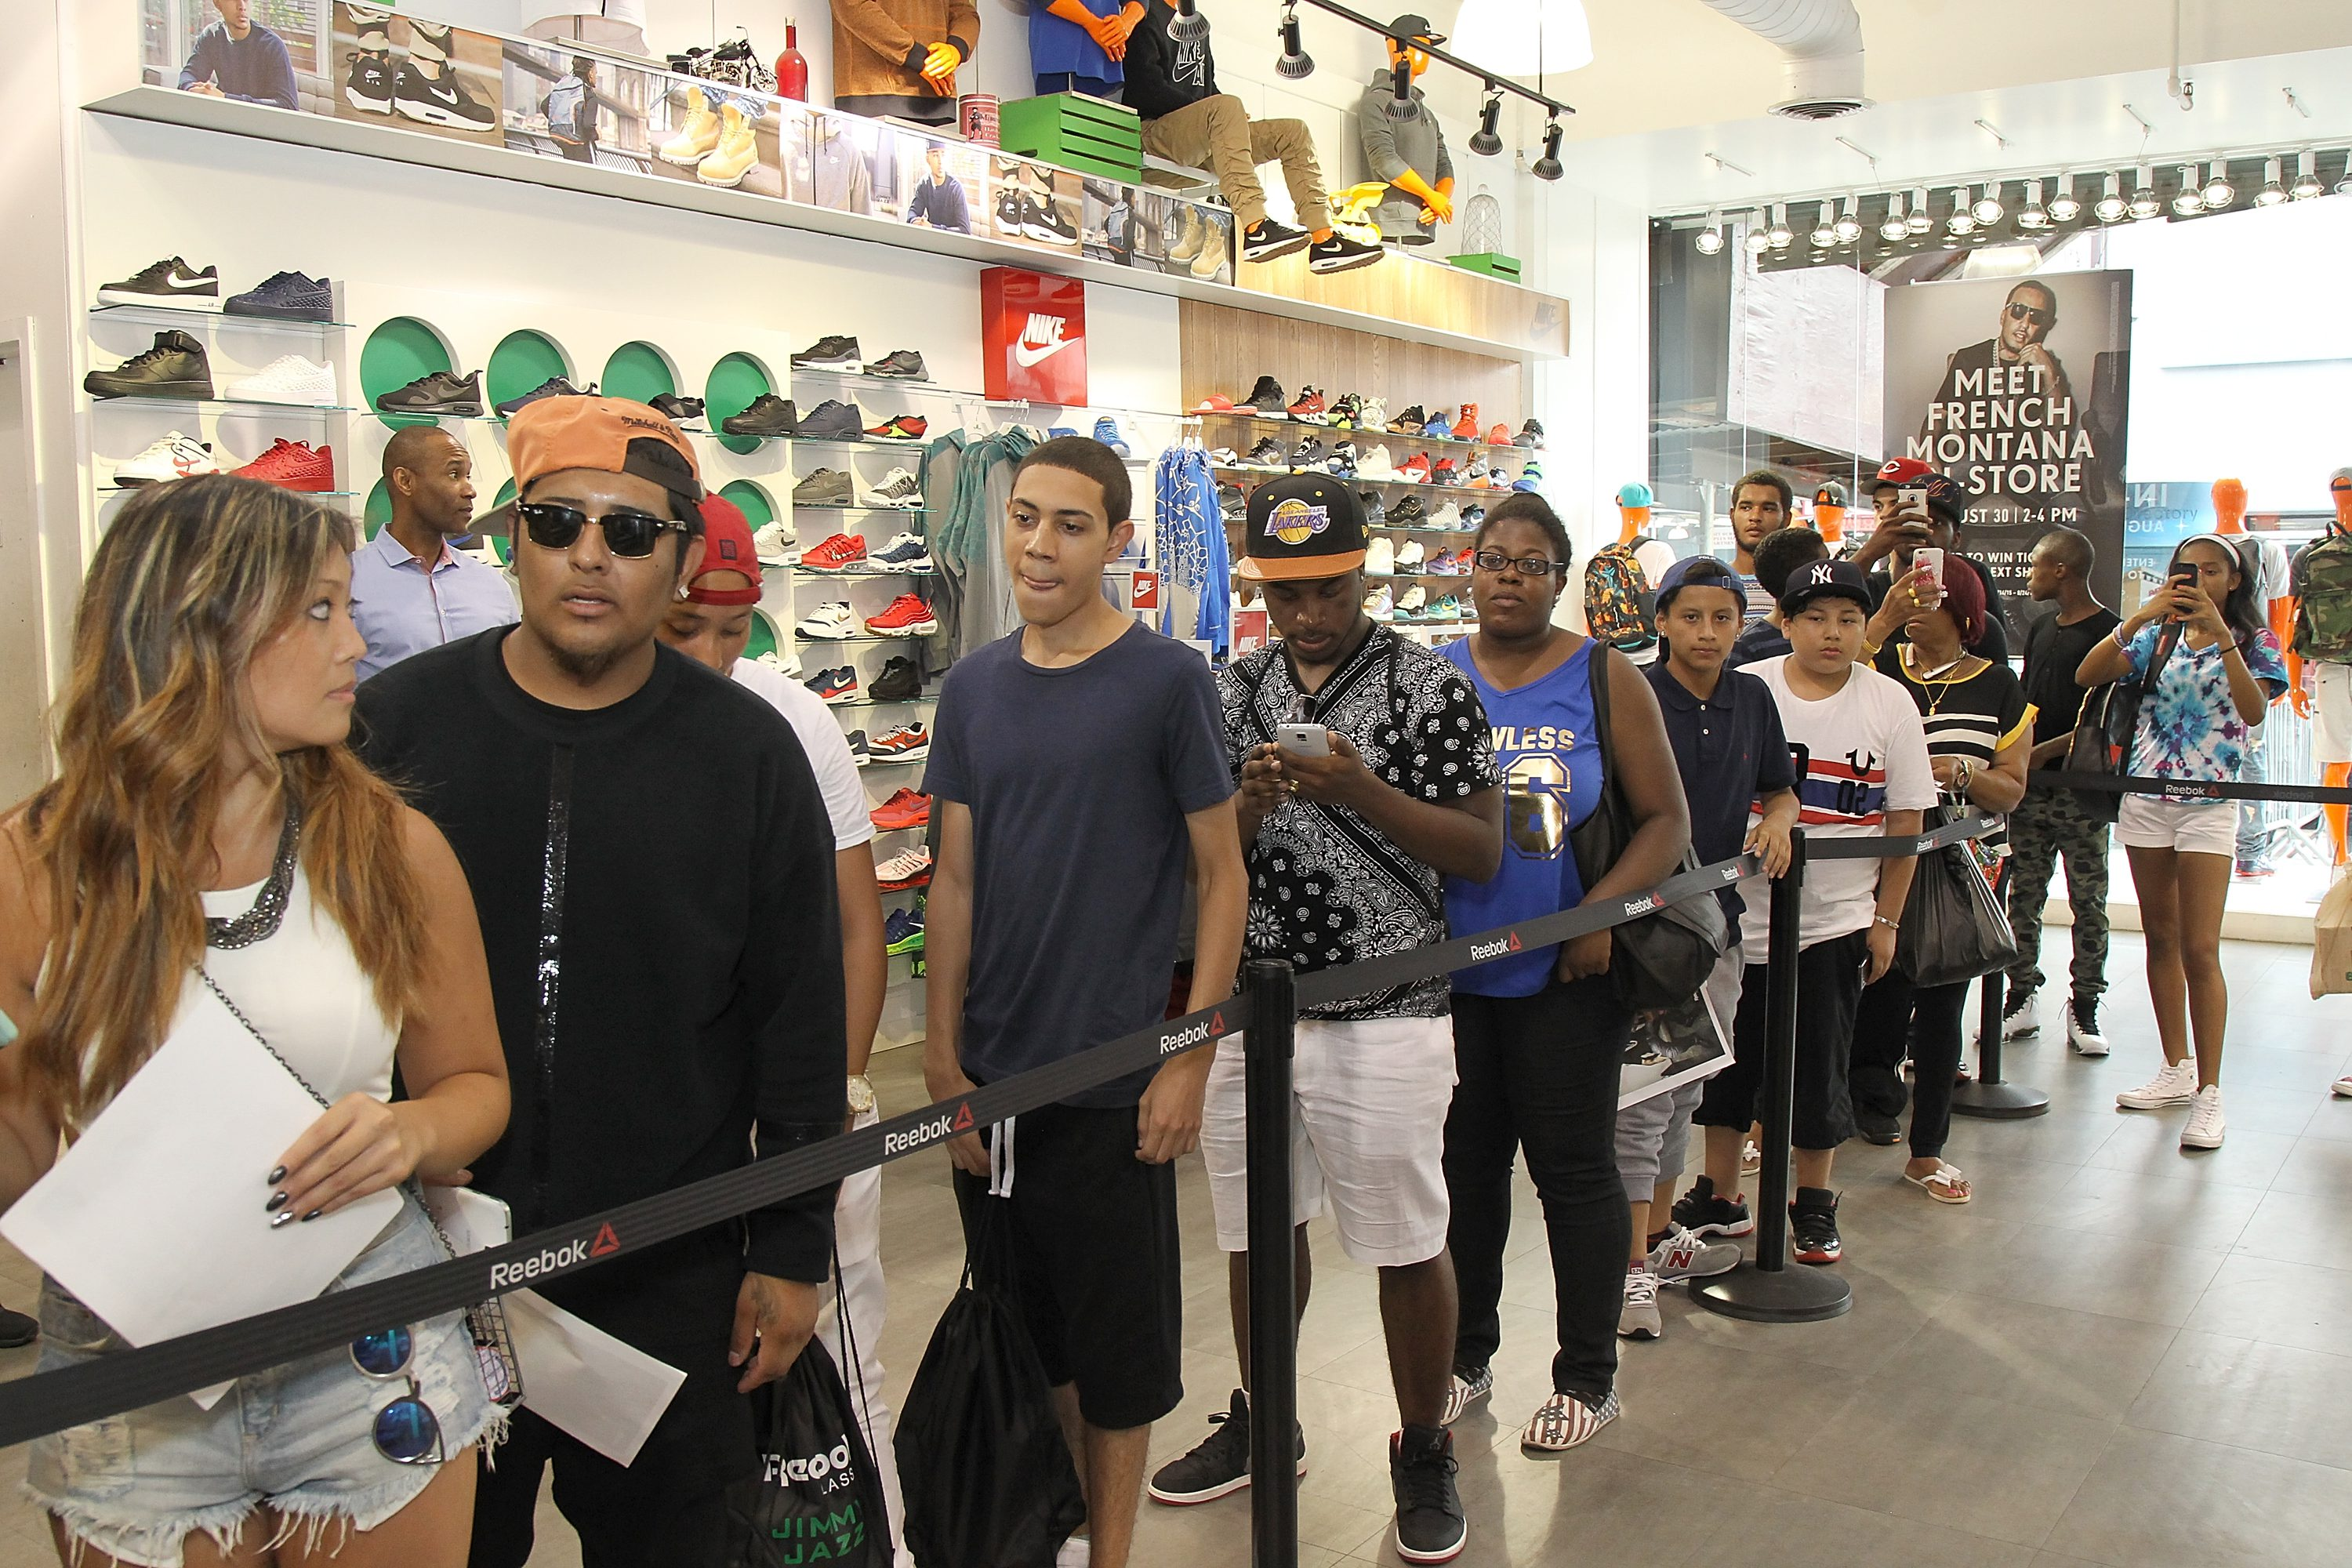 NEW YORK, NY - AUGUST 30:  Fans line up inside the Jimmy Jazz store during   French Montana's launch of the Ventilator ST at Jimmy Jazz in Harlem on August 30, 2015 in New York City.  (Photo by Bennett Raglin/Getty Images for Reebok)